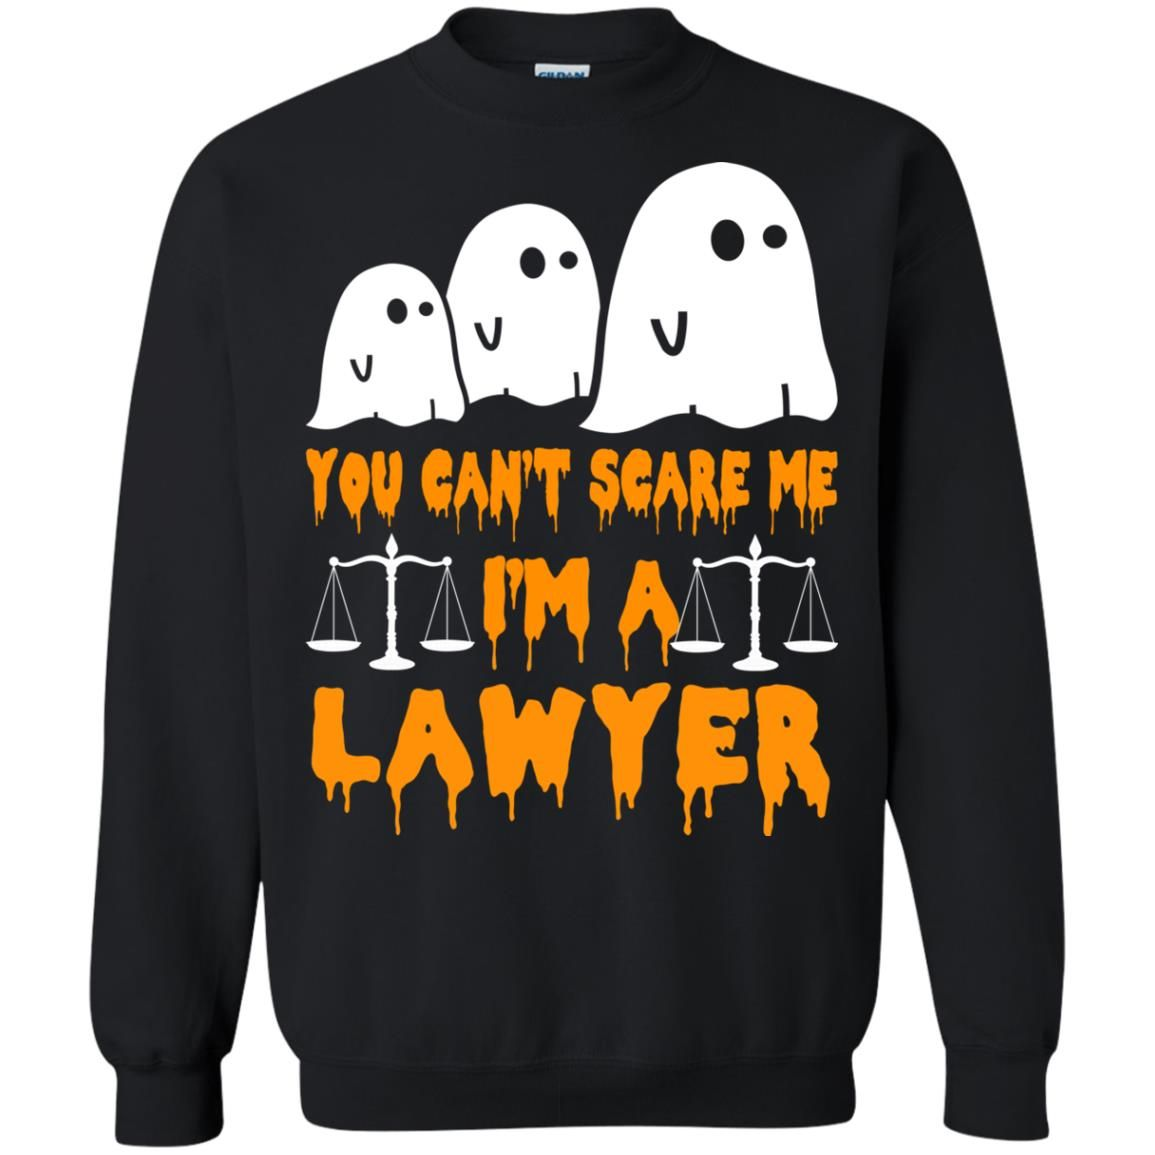 image 638 - You can't scare me I'm a Lawyer shirt, hoodie, tank